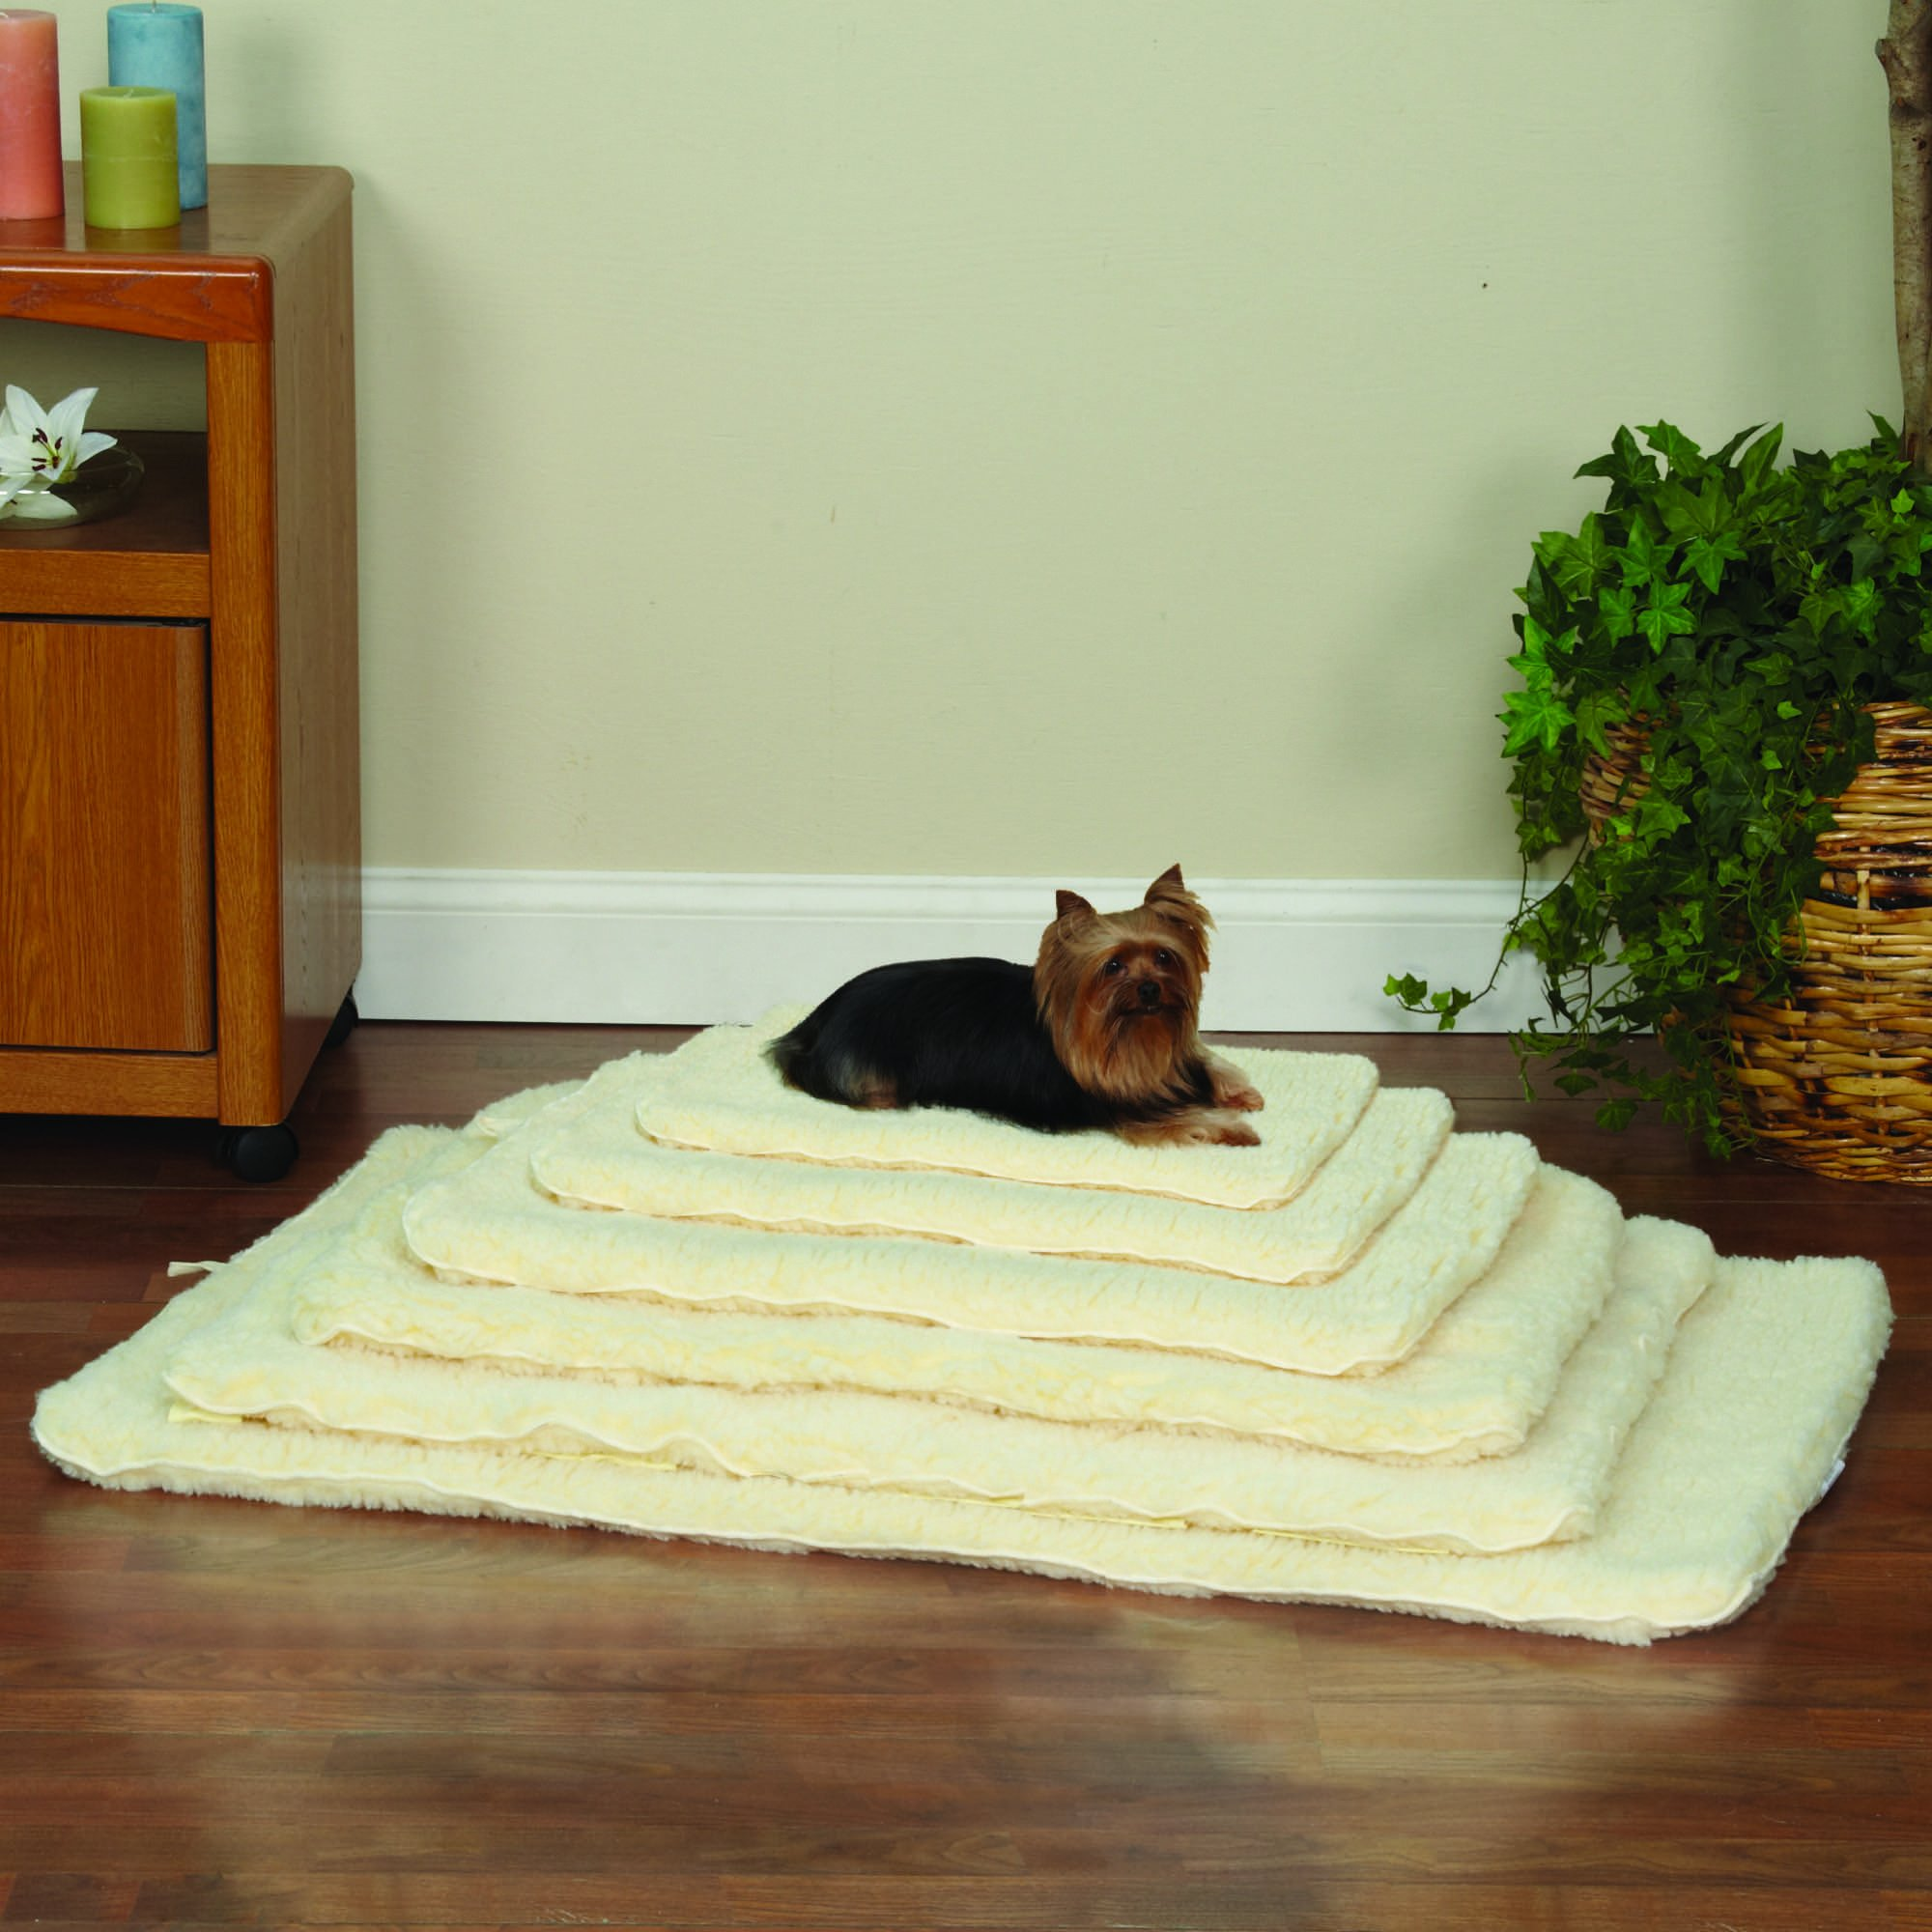 Slumber Pet Double-Sided Sherpa Mats  -  Versatile and Comfortable Mats for Dogs and Cats - Large, Natural